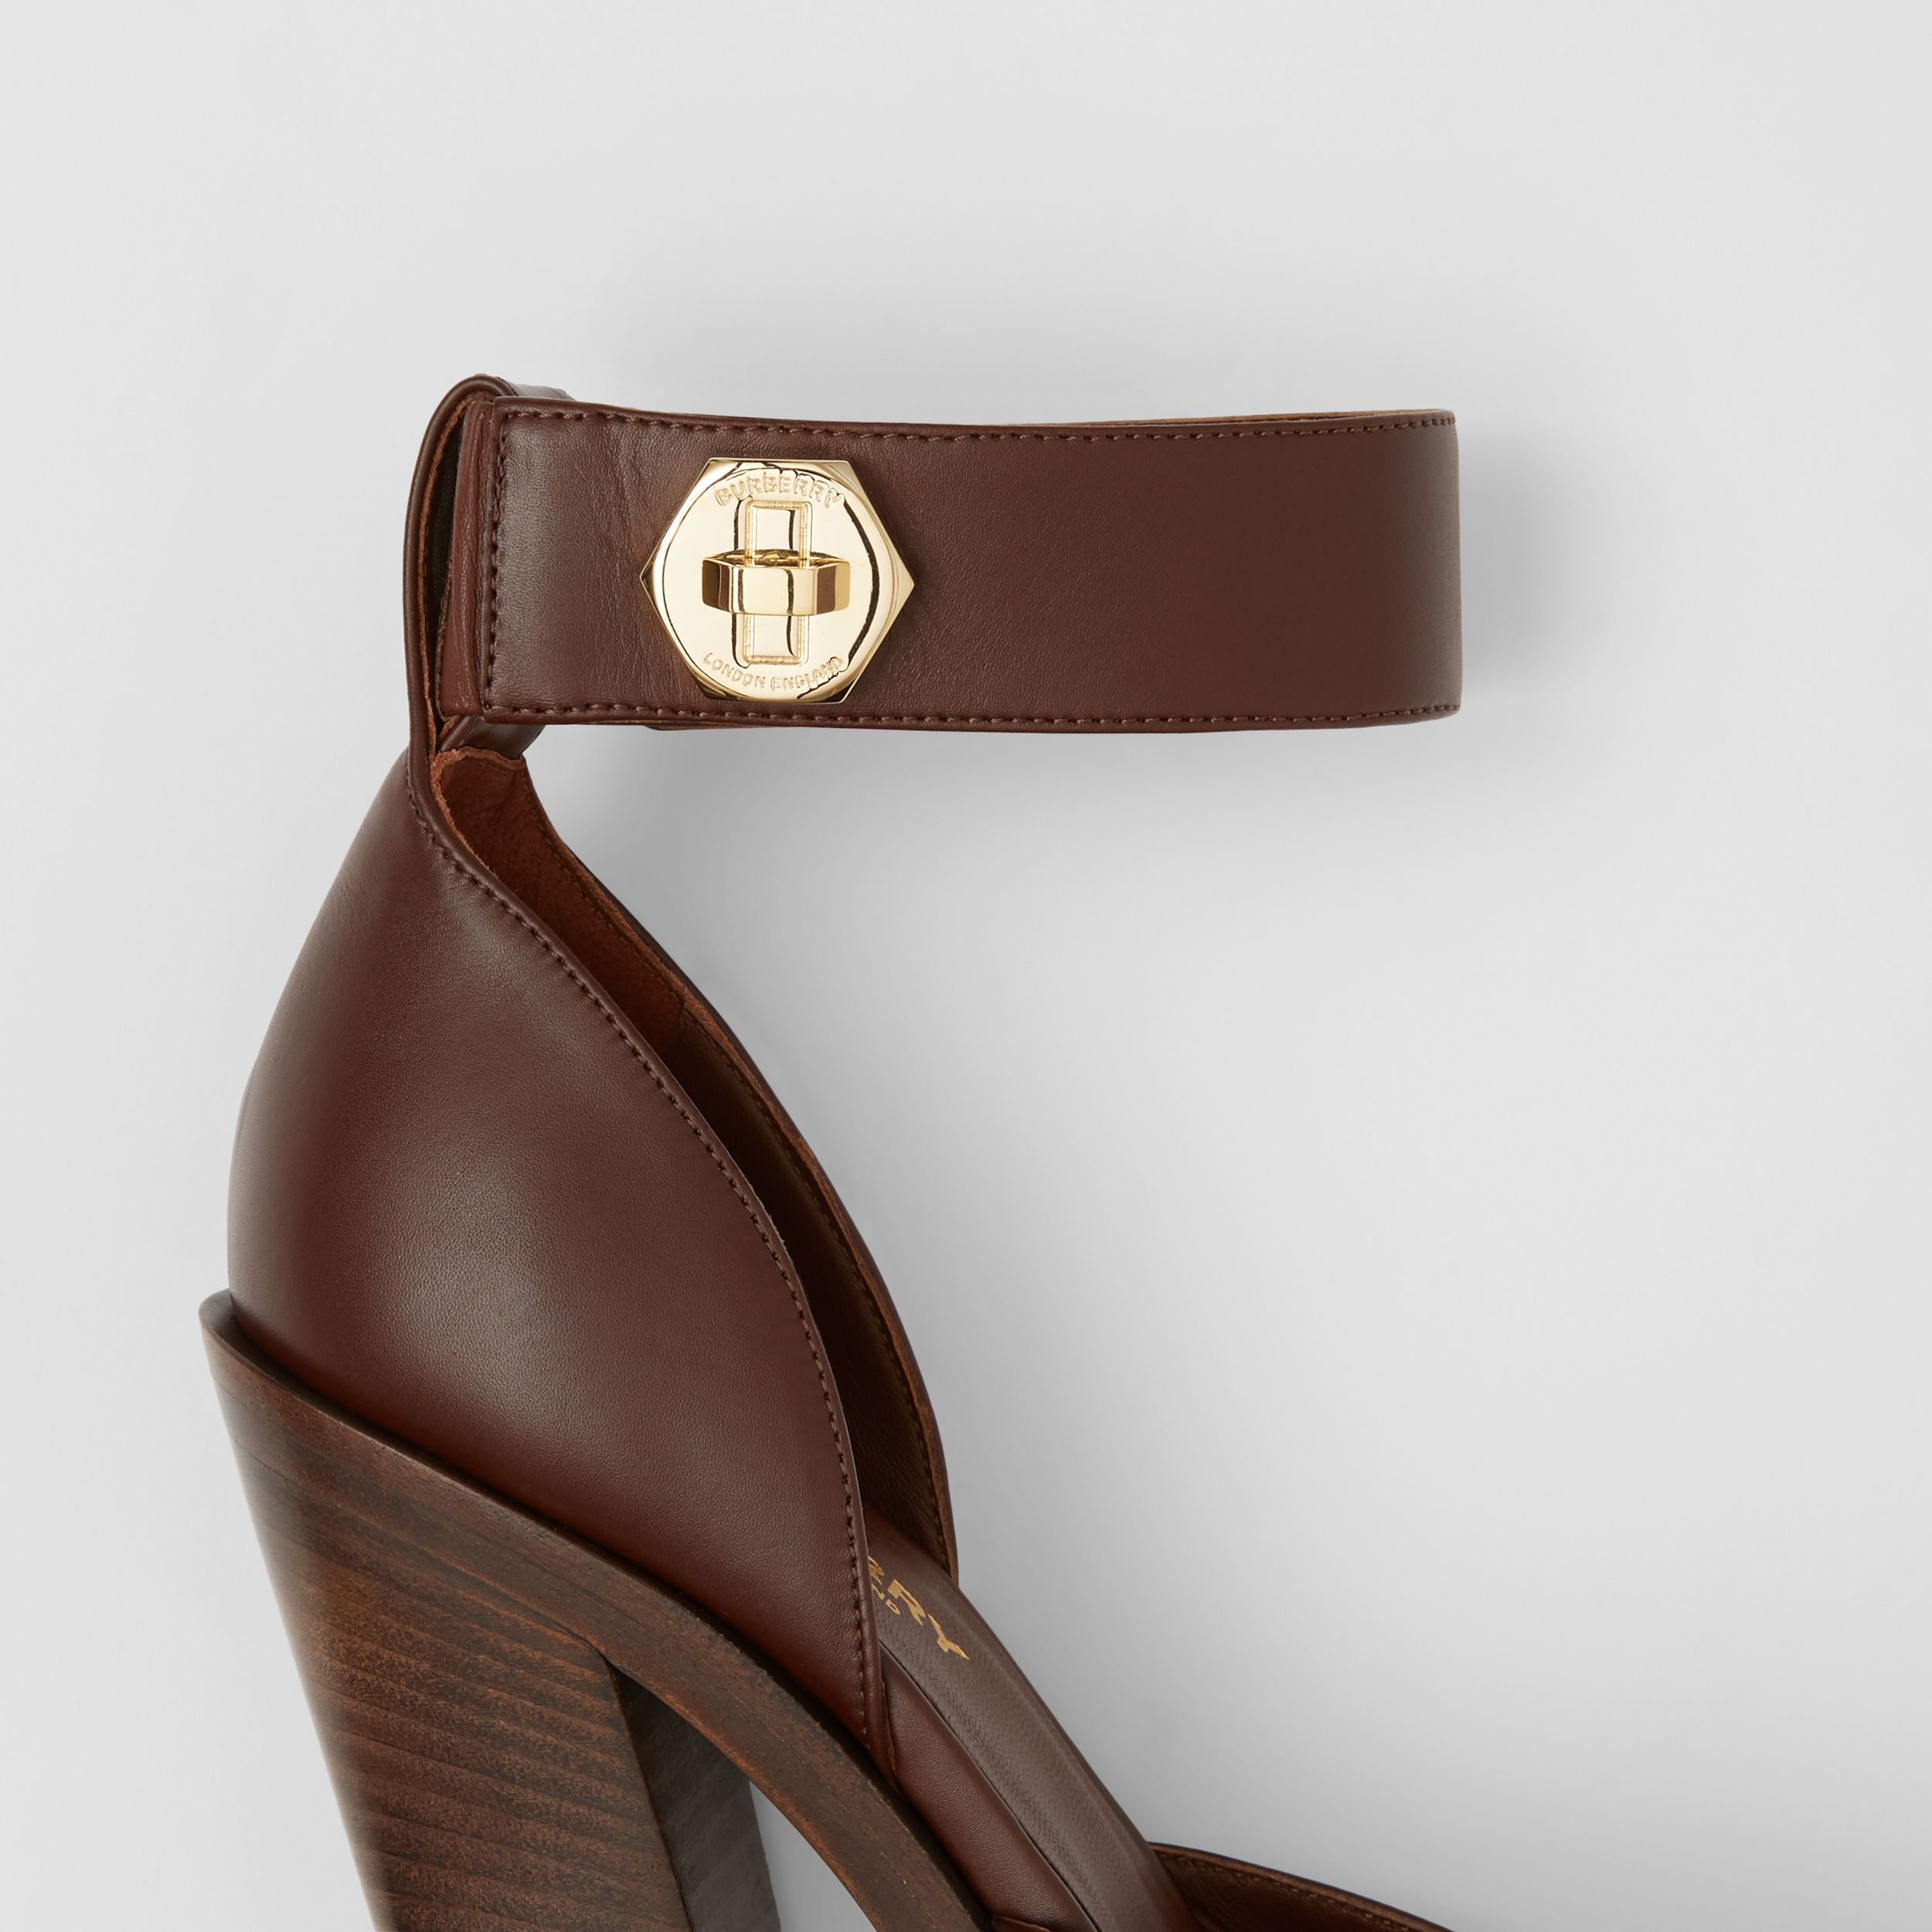 Leather Point-toe Pumps in Tan - Women | Burberry - 2